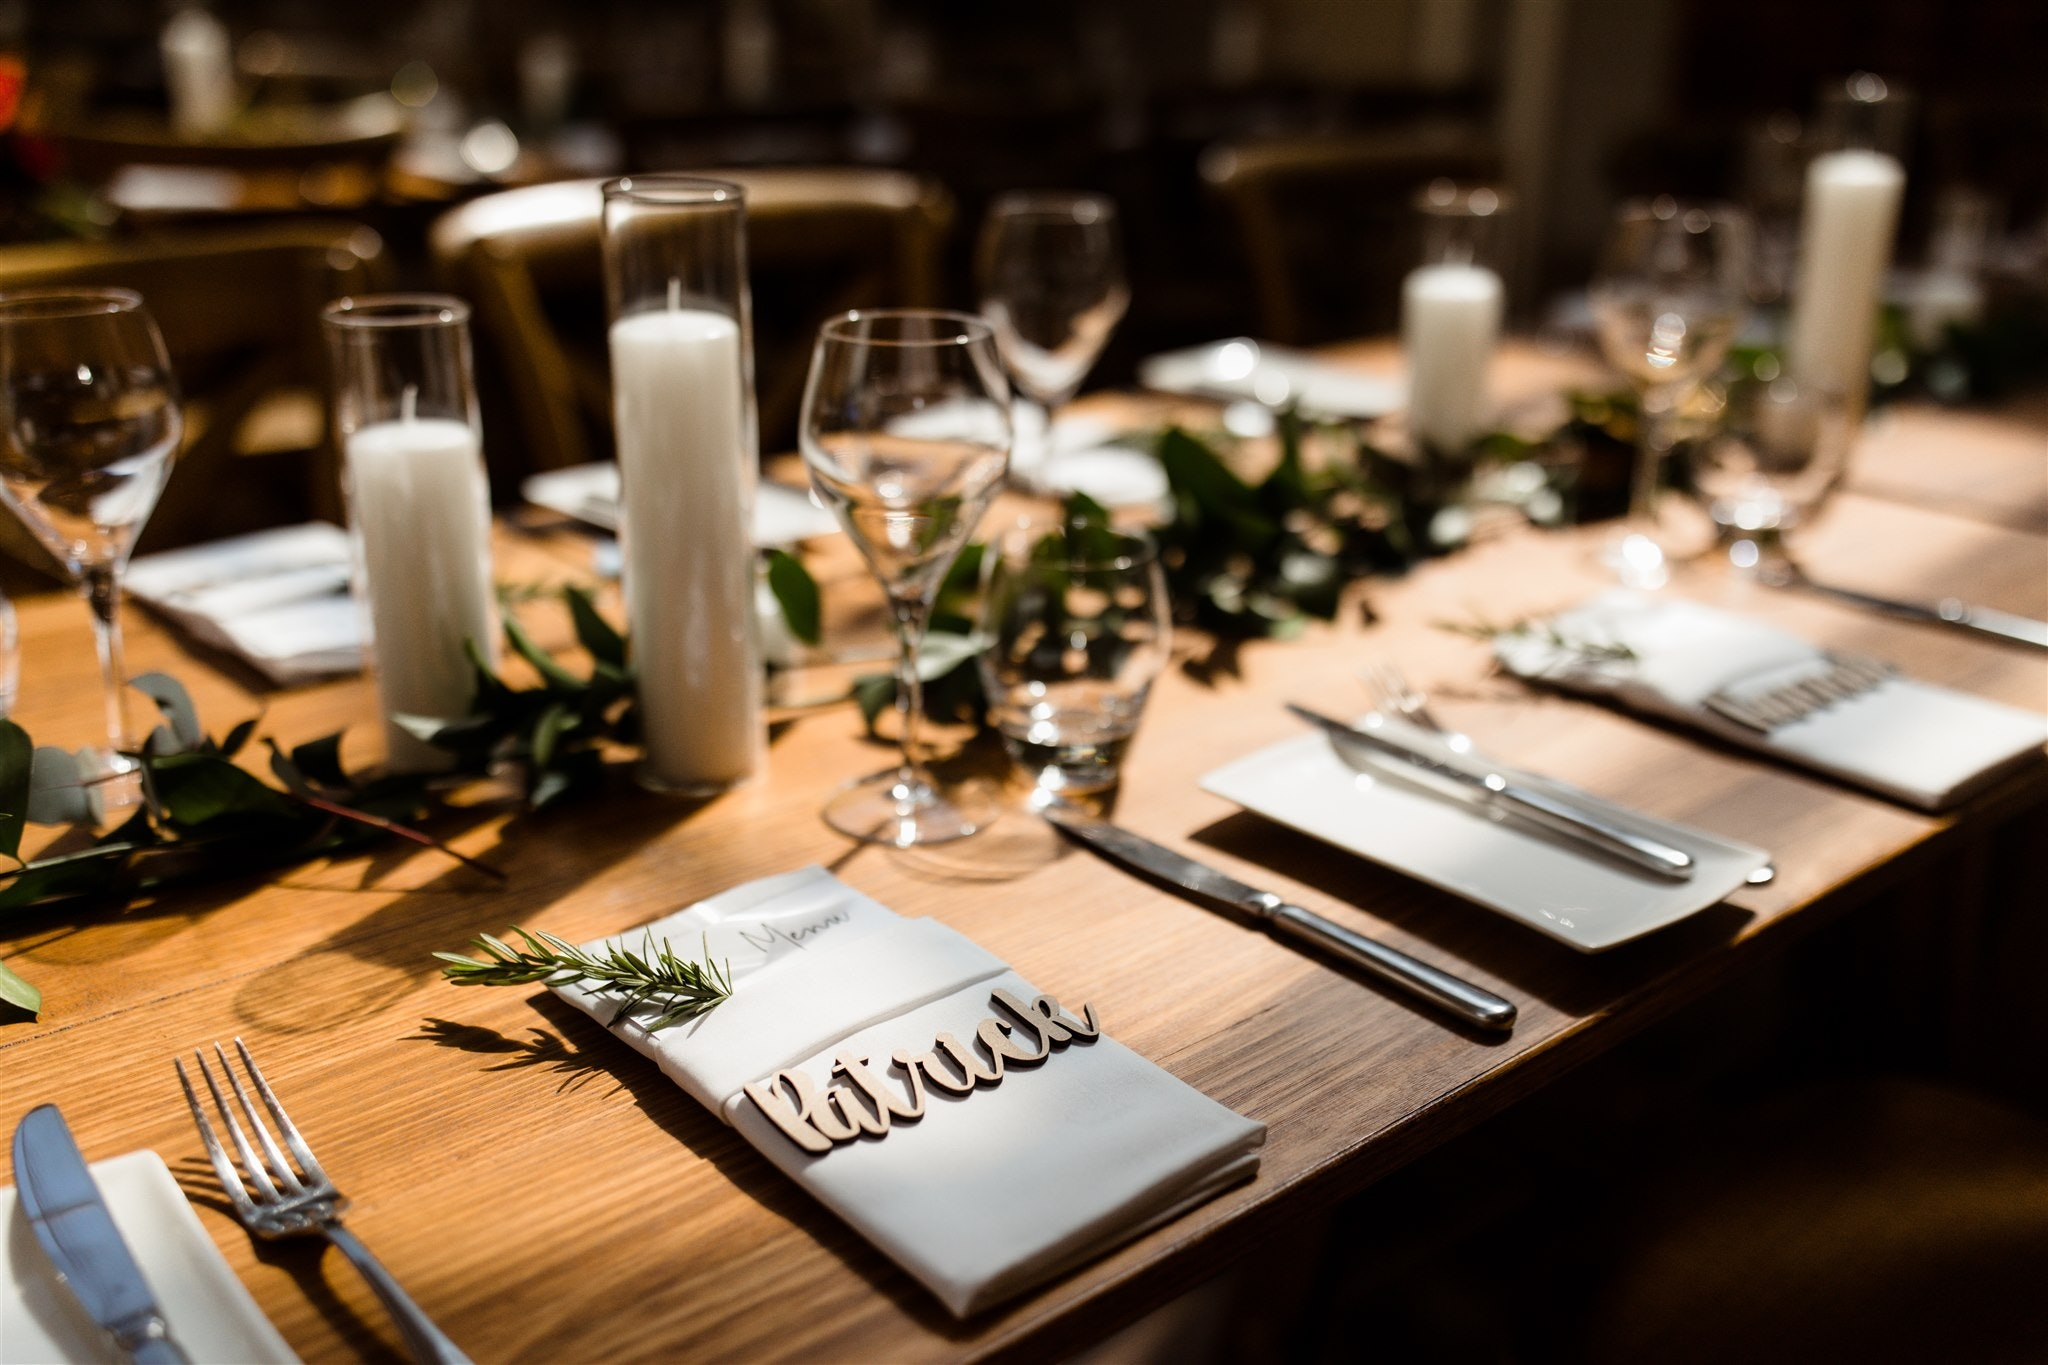 Wedding reception set with napkins, candles and greenery